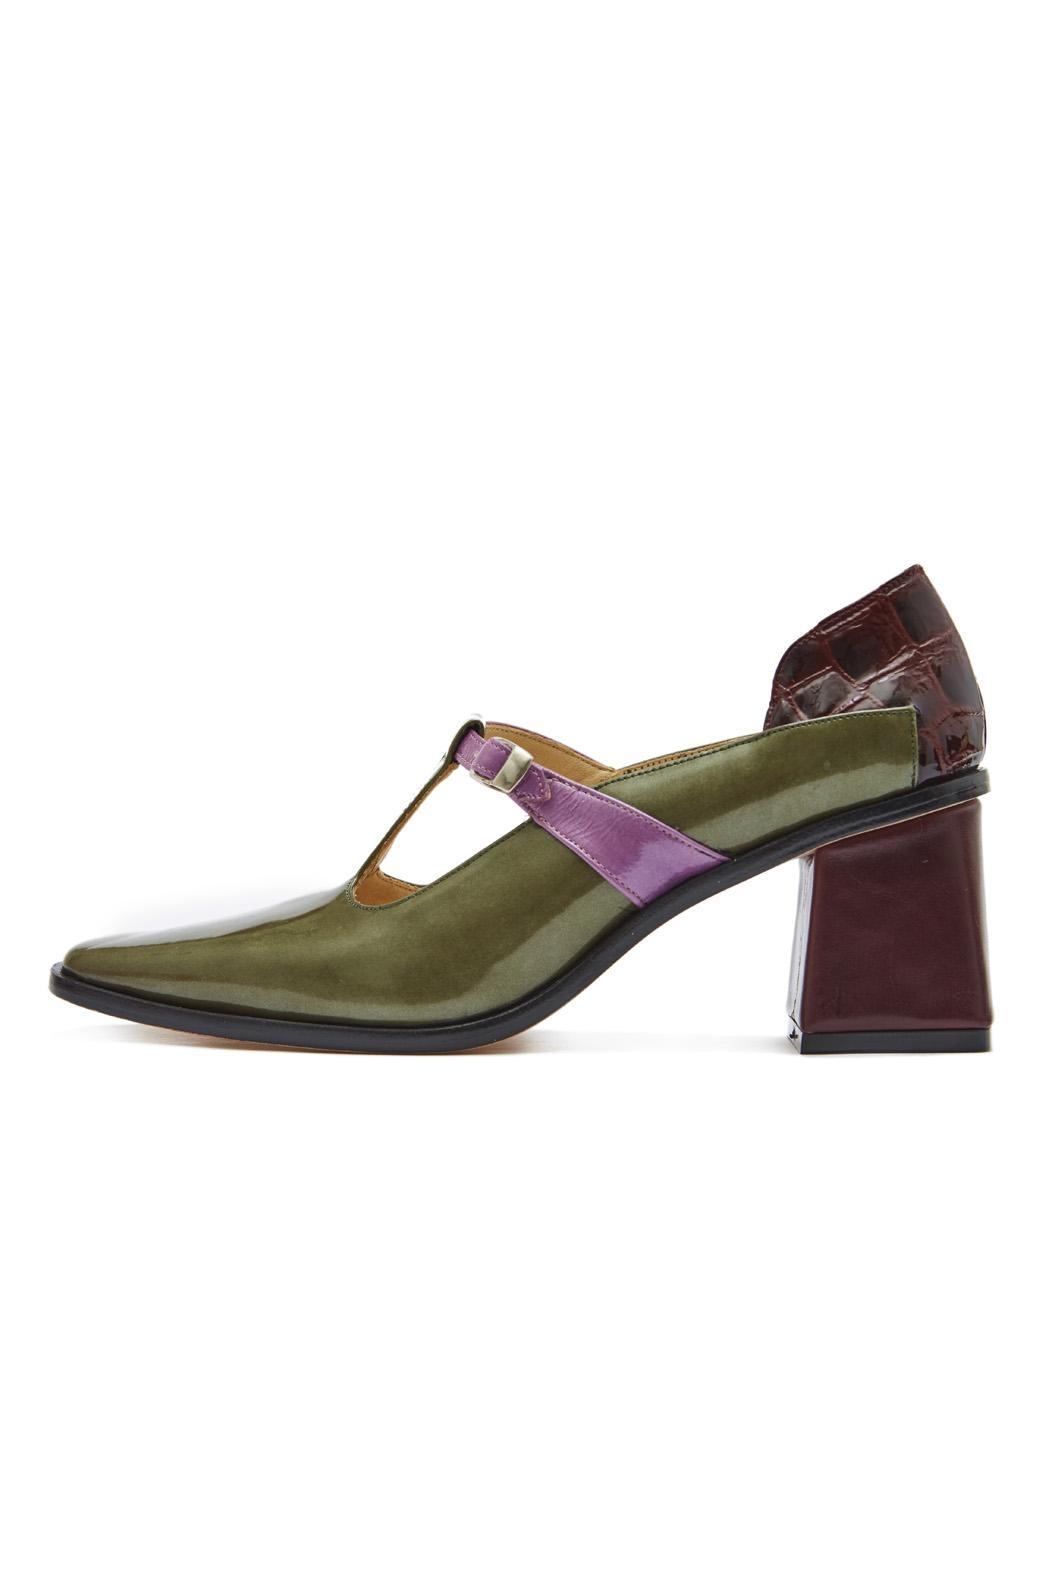 Jessica Kessel Caterina Green Pumps - Main Image